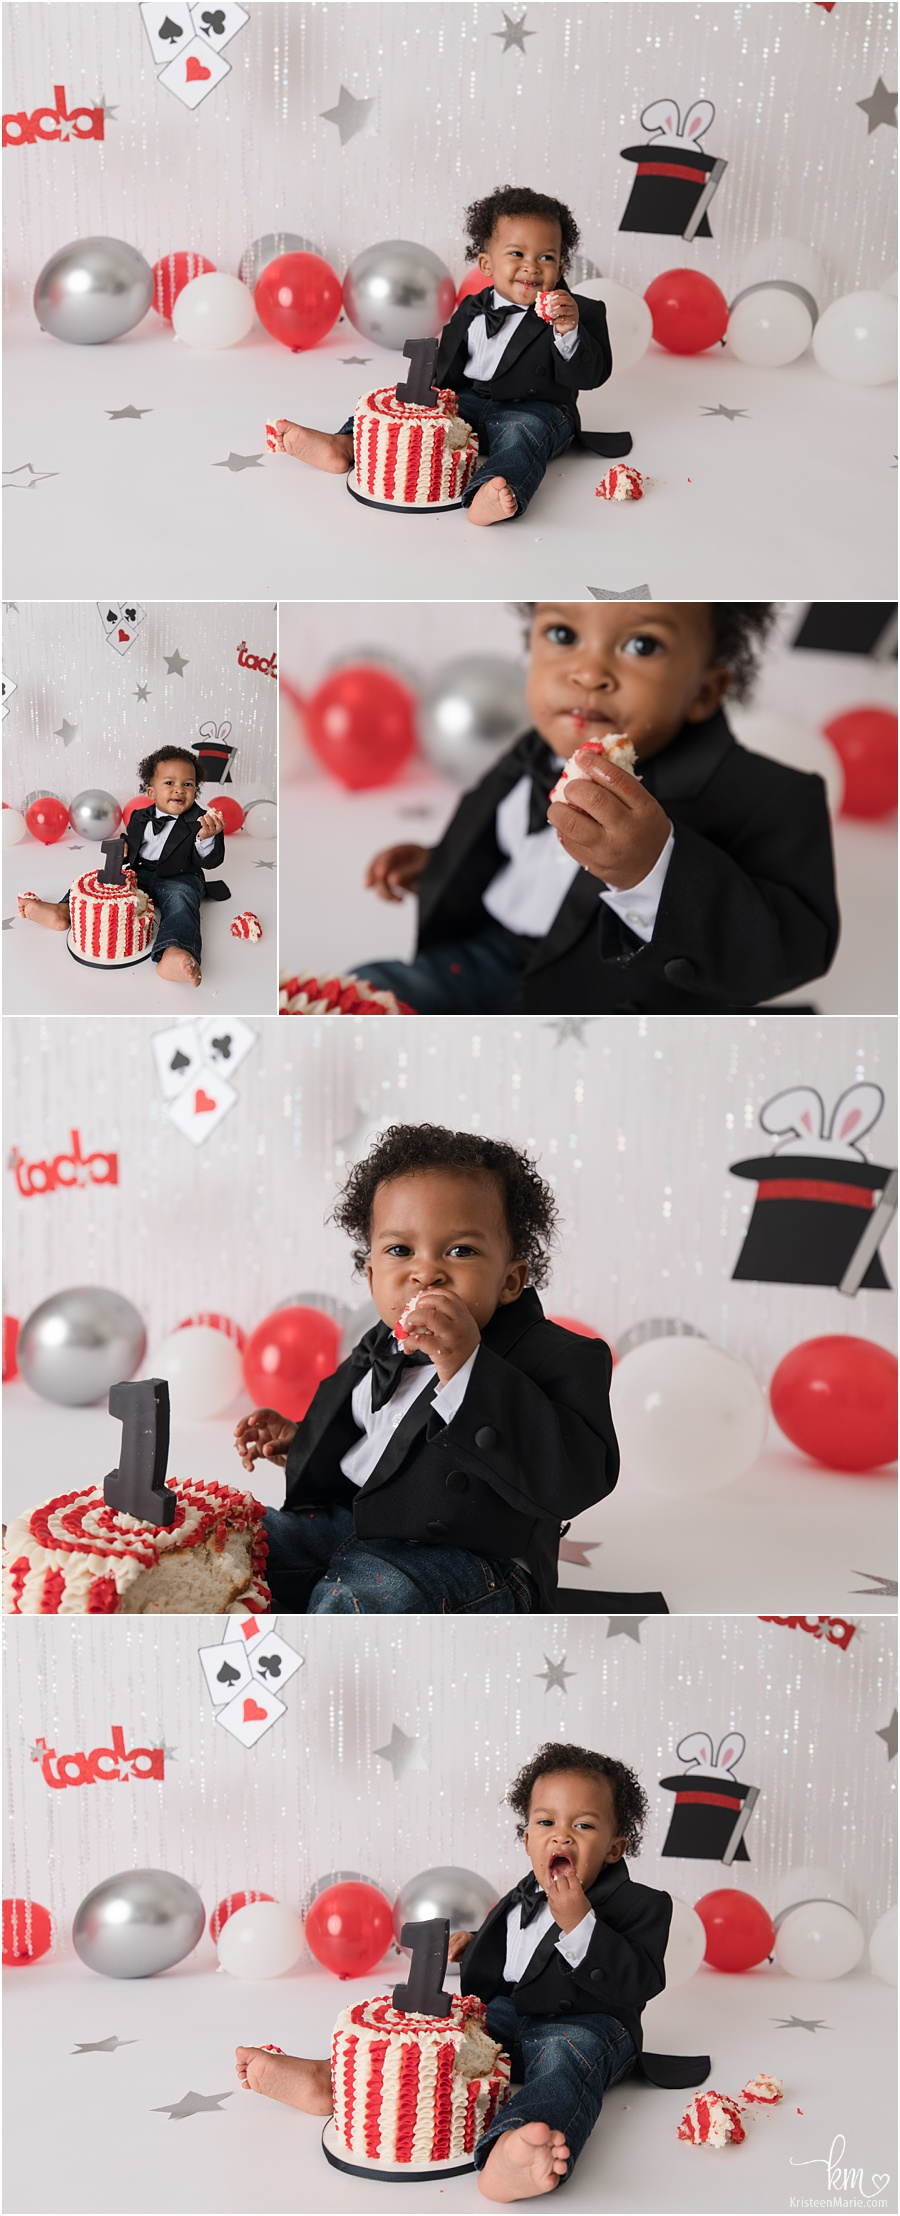 Magic themed 1st birthday party cake smash - tada, rabbits in hat - red, white and black